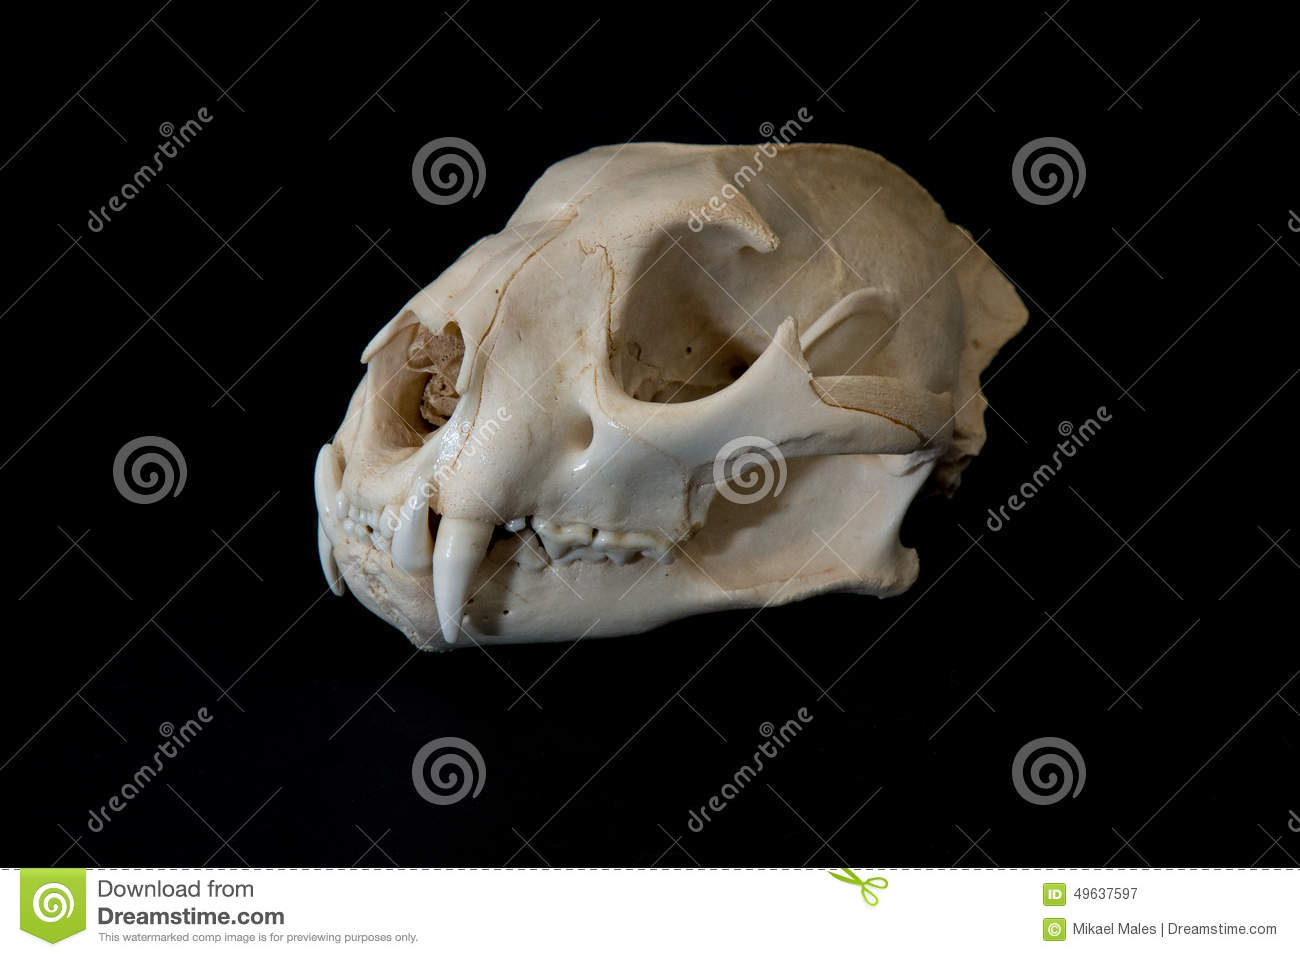 Side View Of Mountain Lion Skull Stock Image - Image of